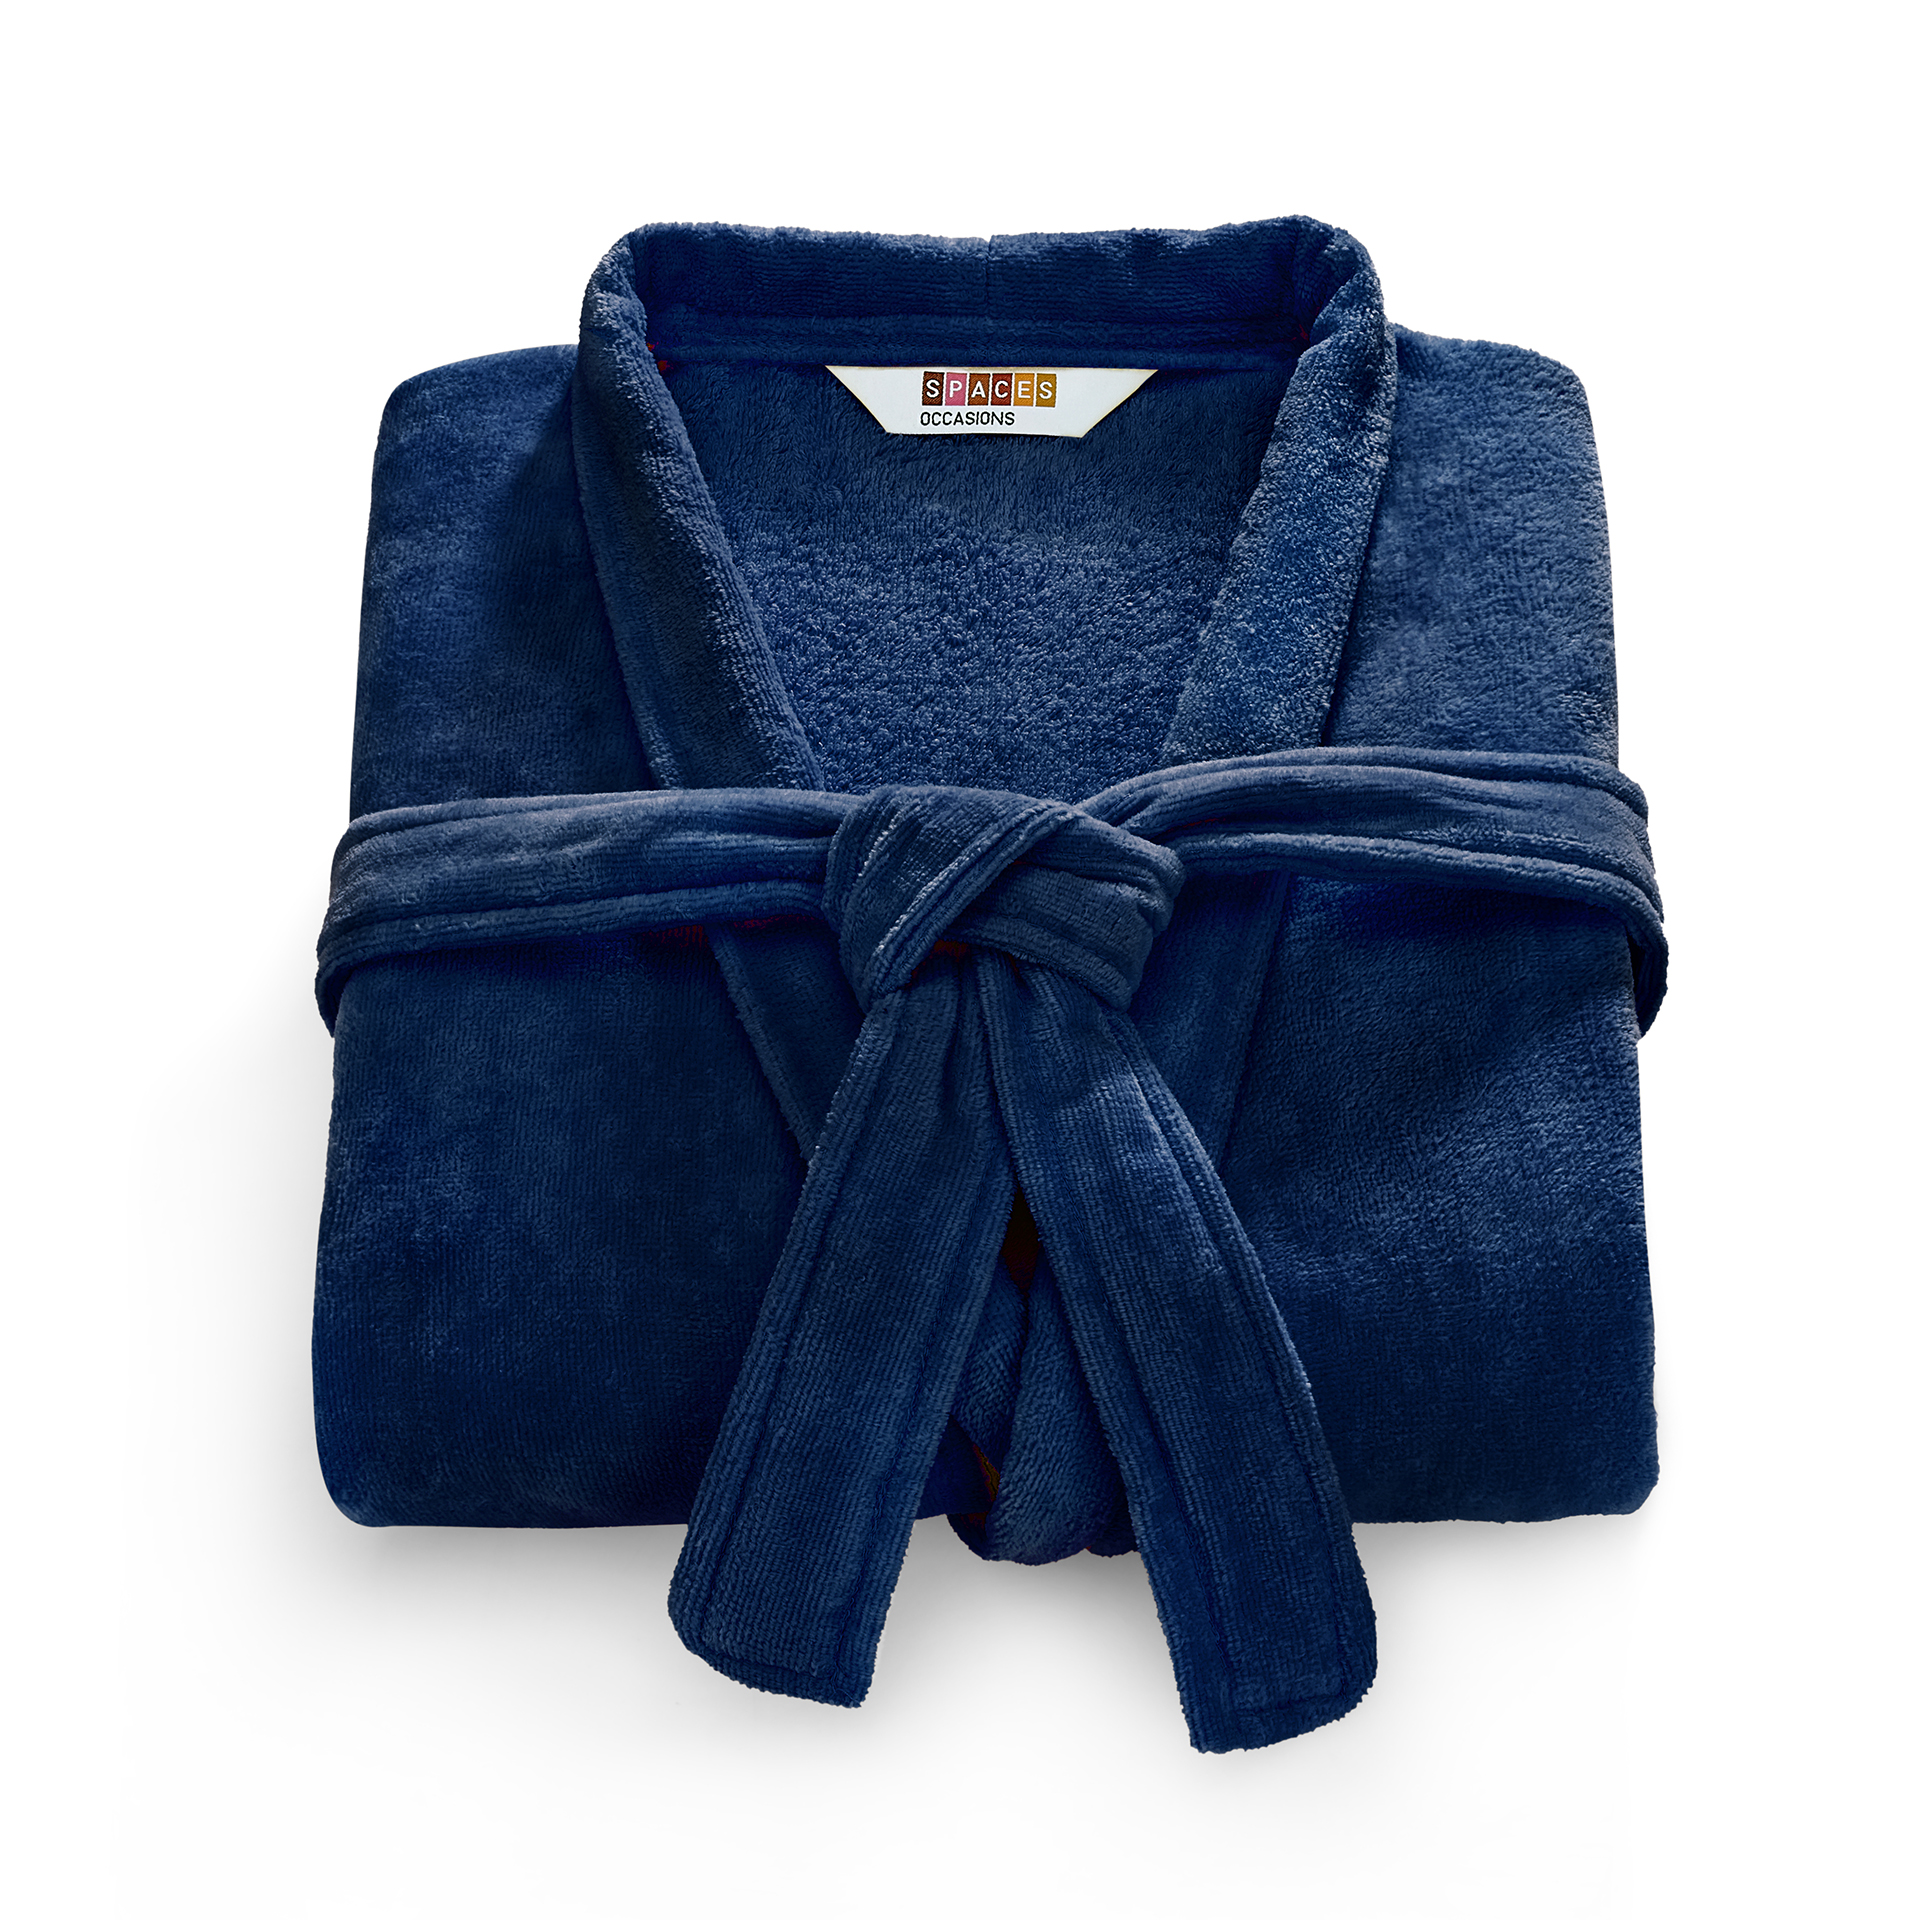 Spaces Allure Cotton Bath Robes in Estate Blue-Fire Colour by Spaces